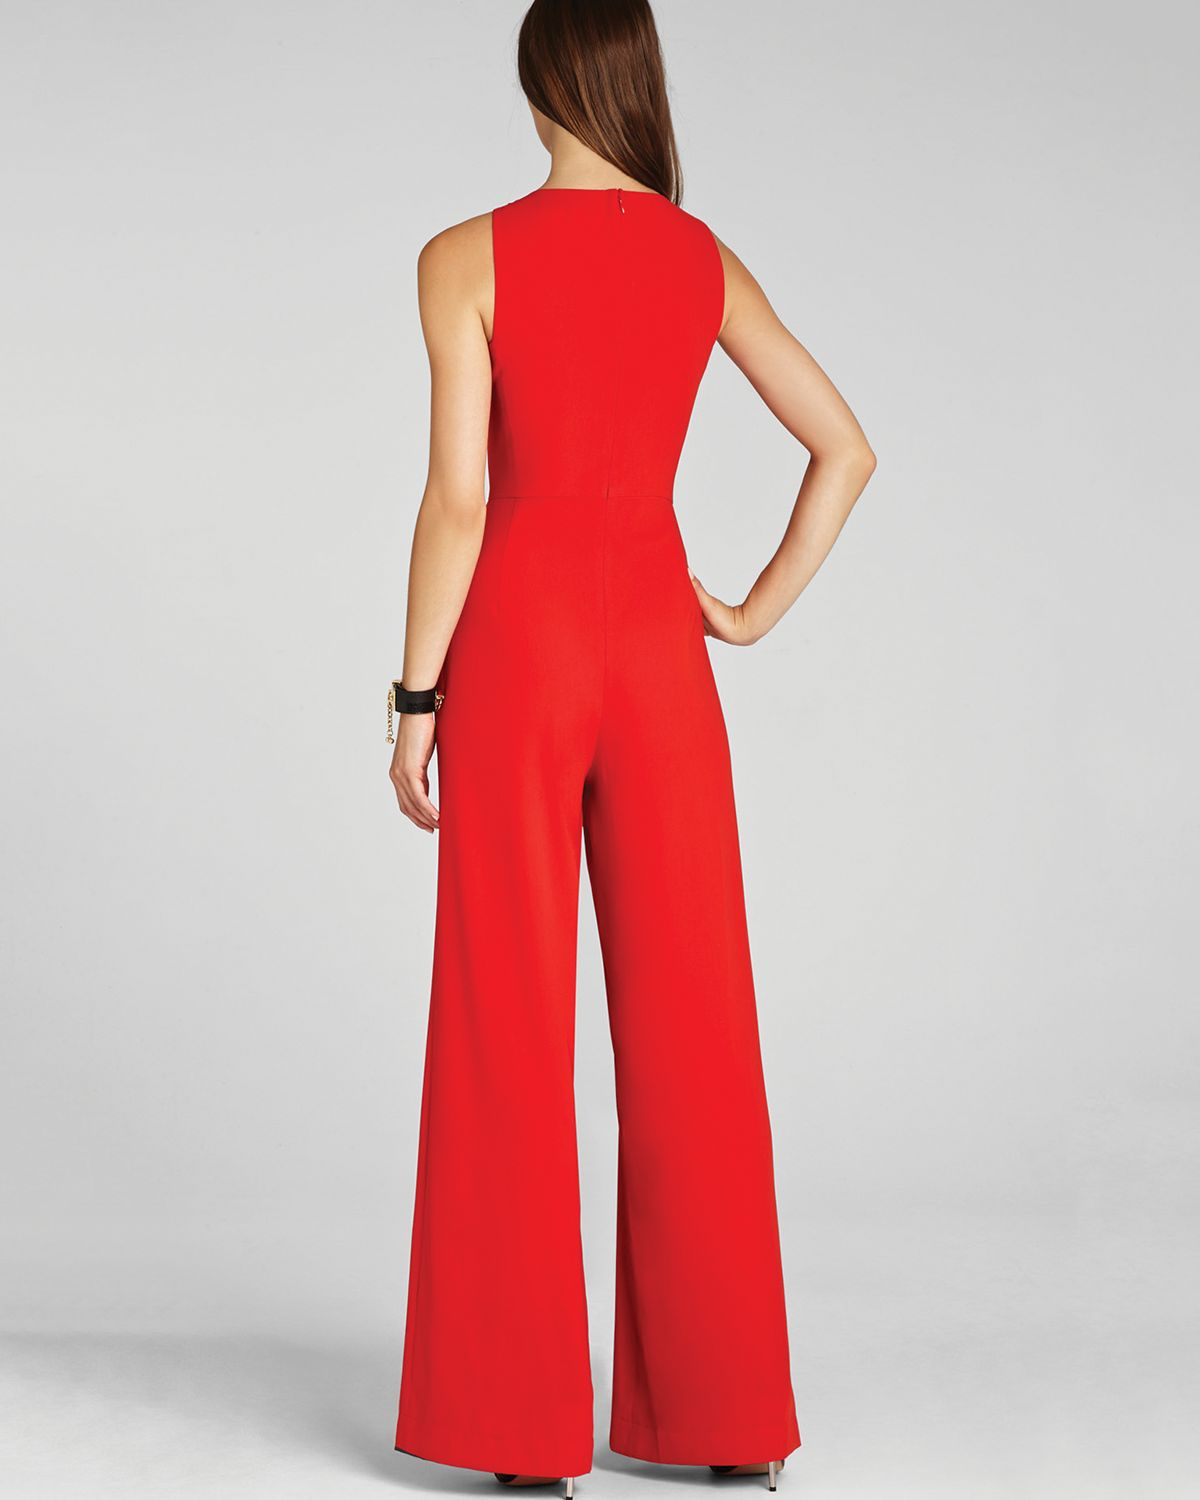 Bcbgmaxazria Jumpsuit Helena Sleeveless in Red | Lyst